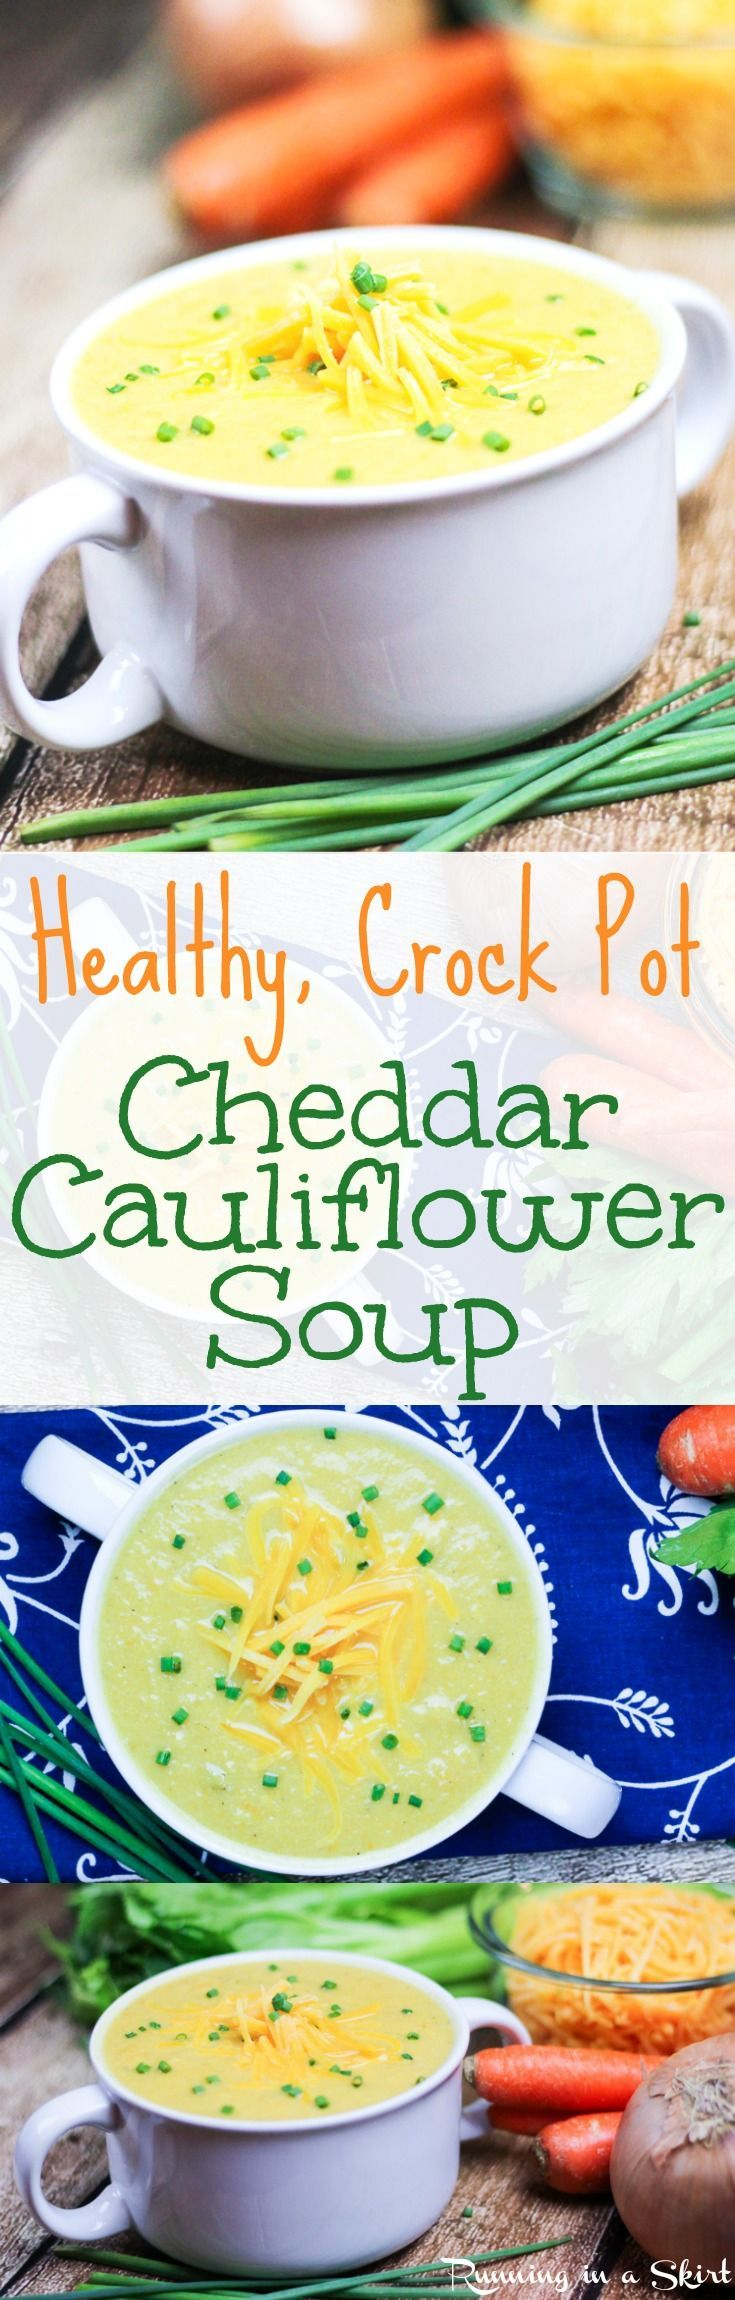 Healthy Crock Pot Cauliflower Cheddar Soup recipe- low carb & gluten free version of classic baked potato soup with cheese. The best simple, easy vegetarian meals made in the slow cooker. A healthy twist on comfort foods!   Running in a Skirt